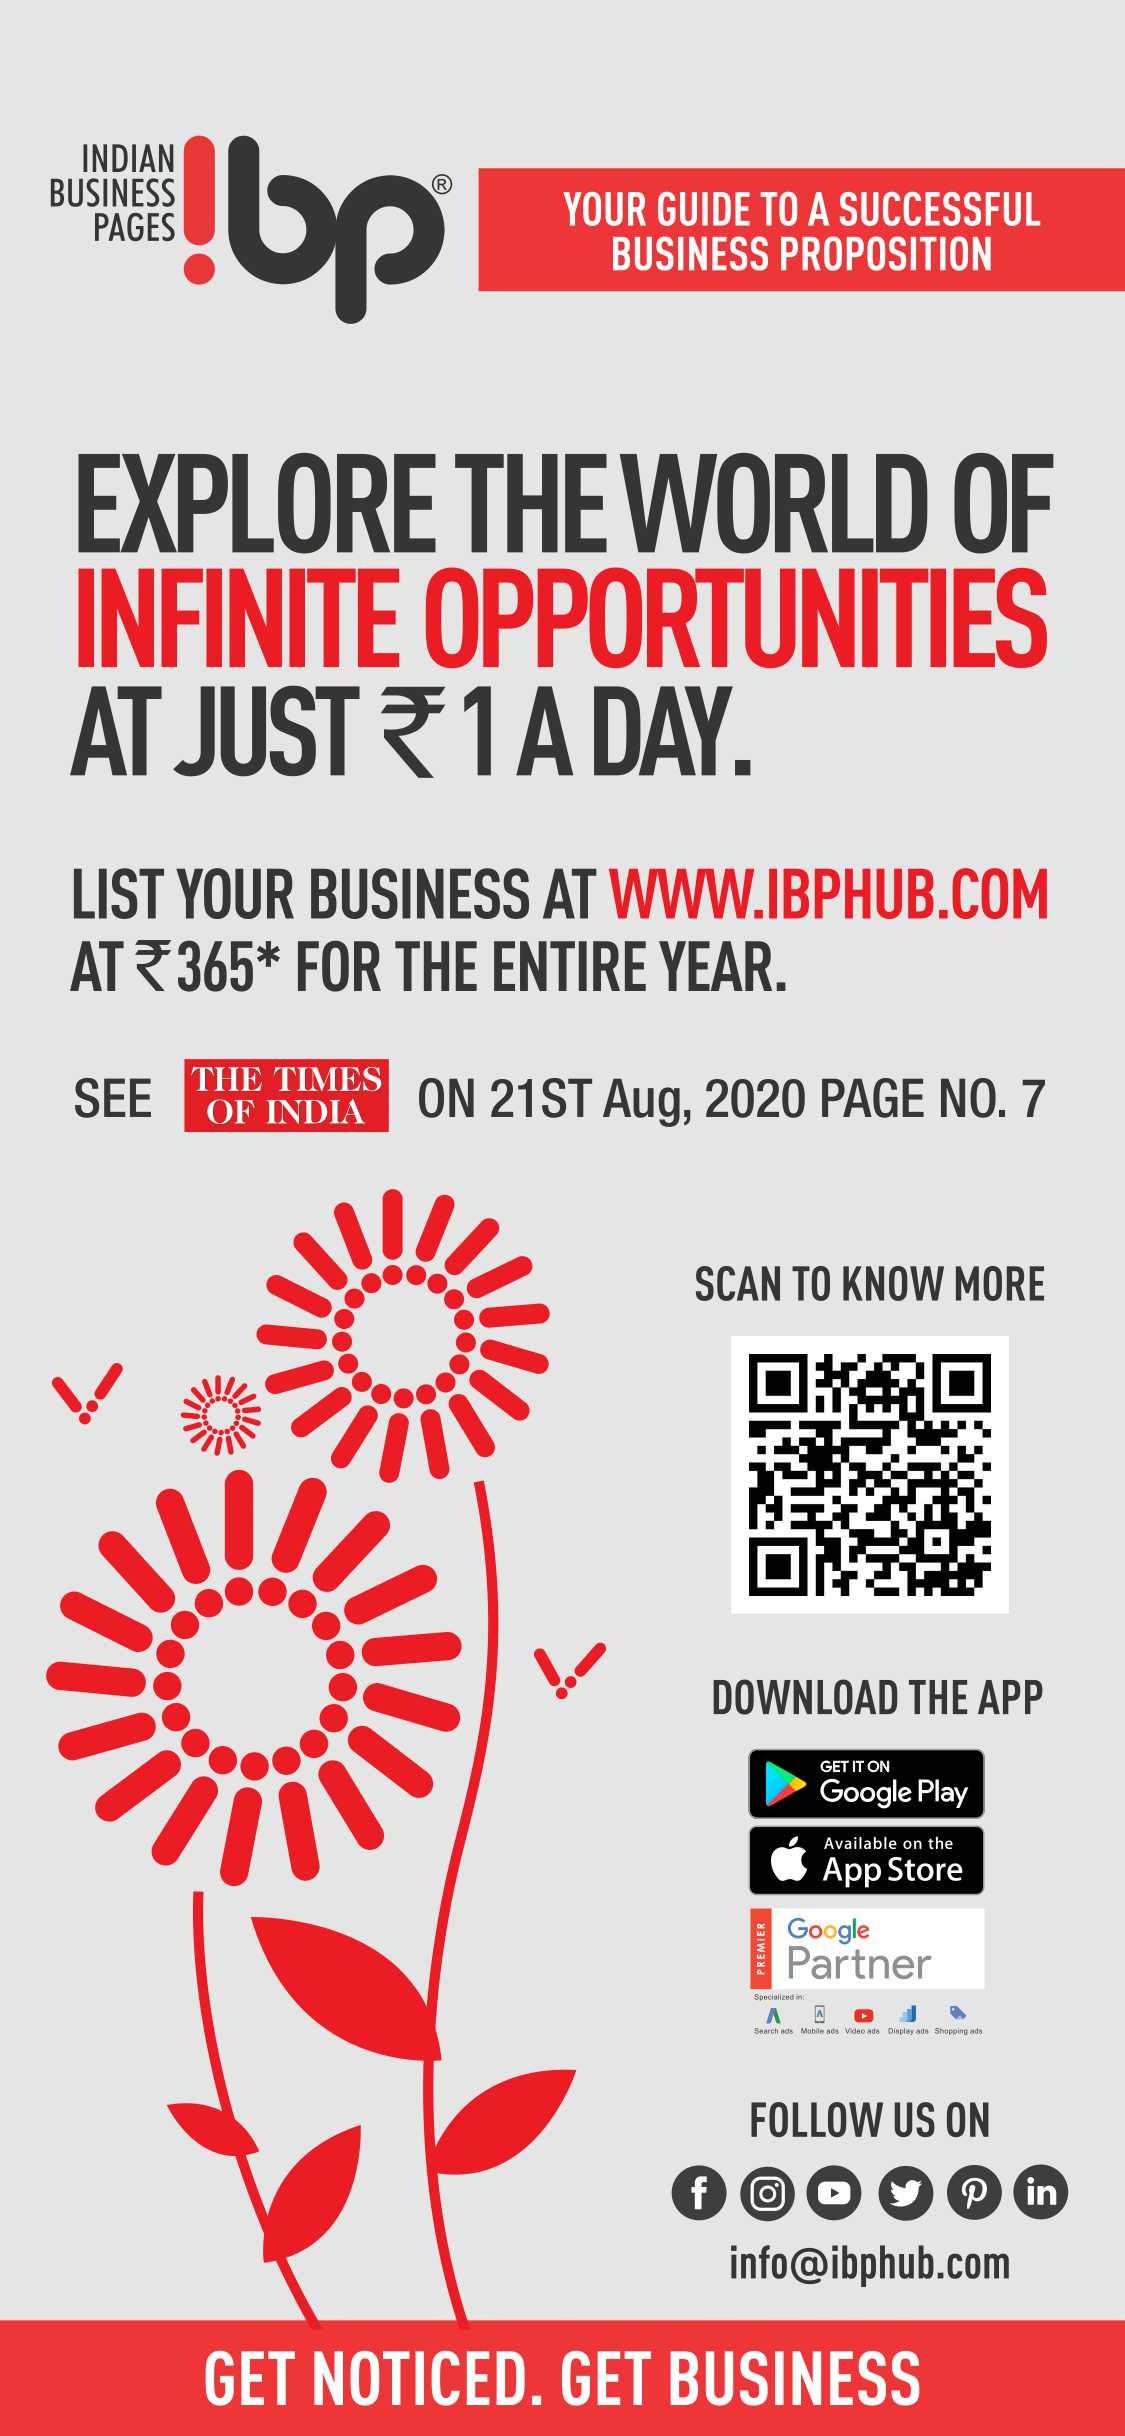 Explore the world of infinite opportunities at just Rs. 1 per day.